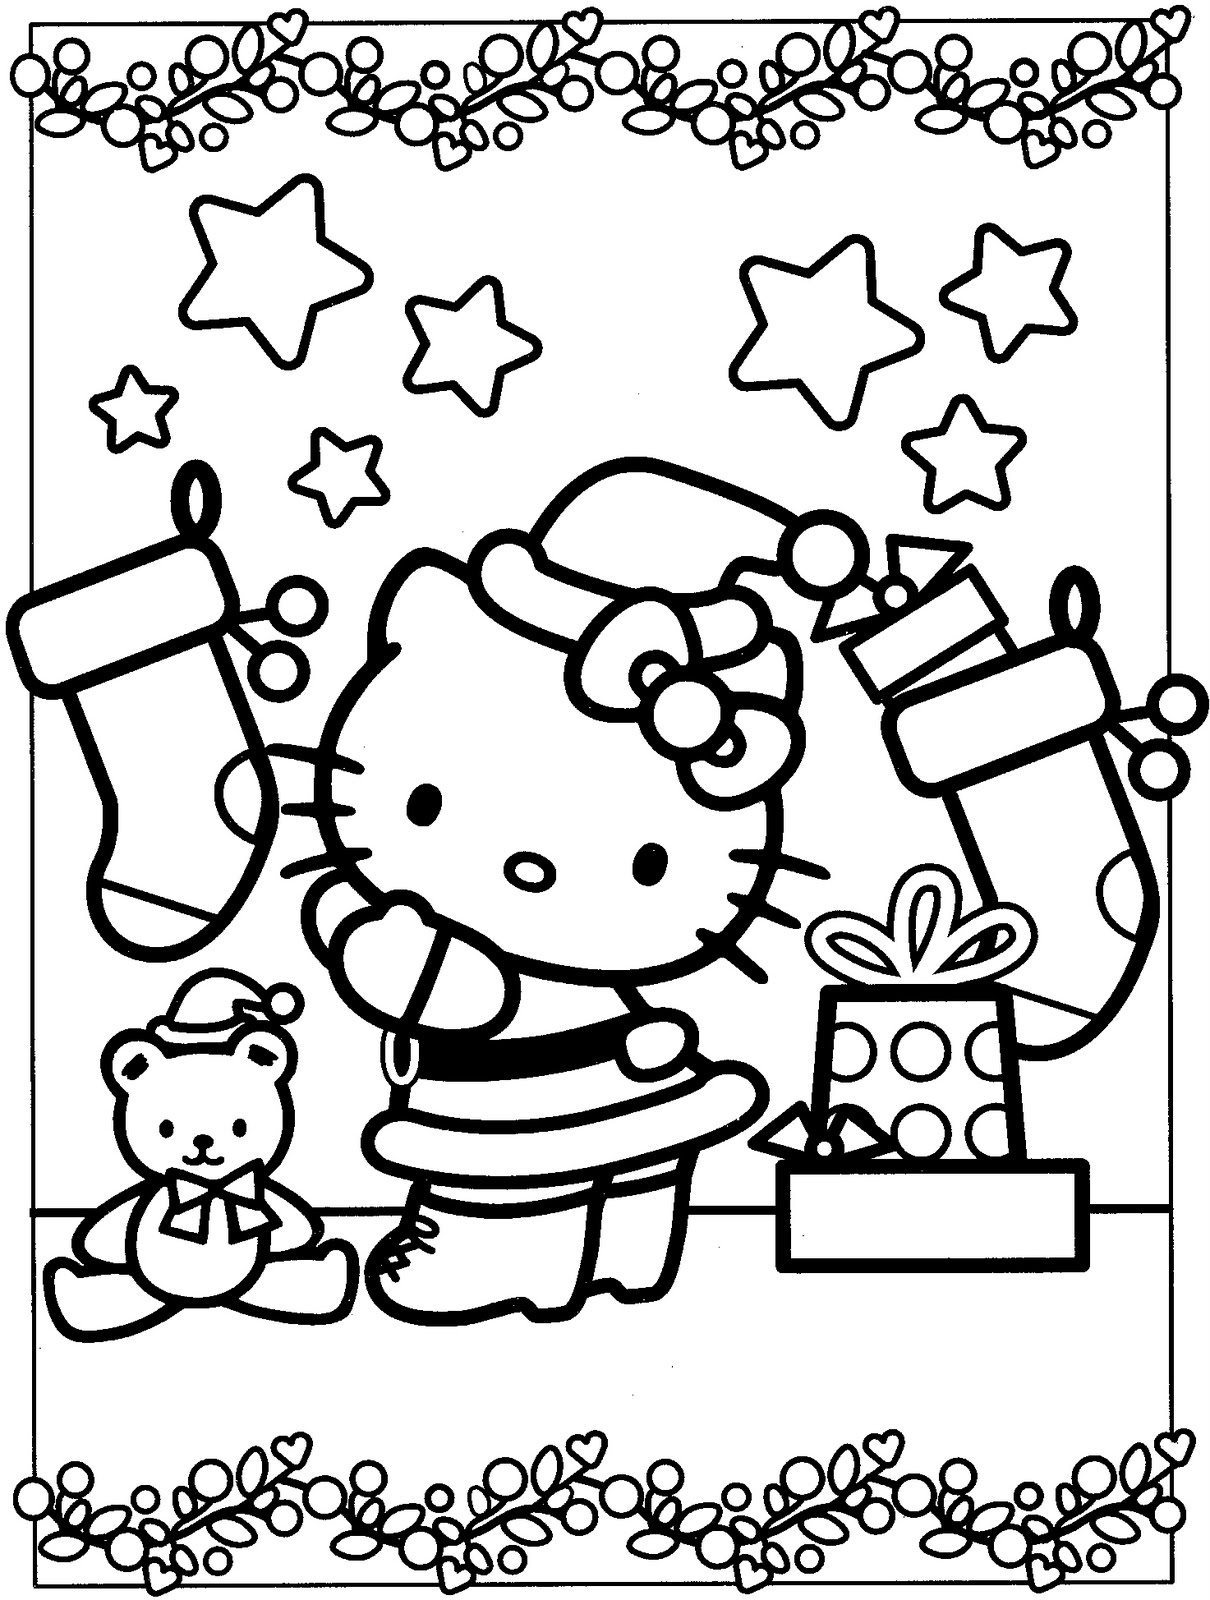 Christmas Mermaid Coloring Pages at GetDrawings.com   Free for ...